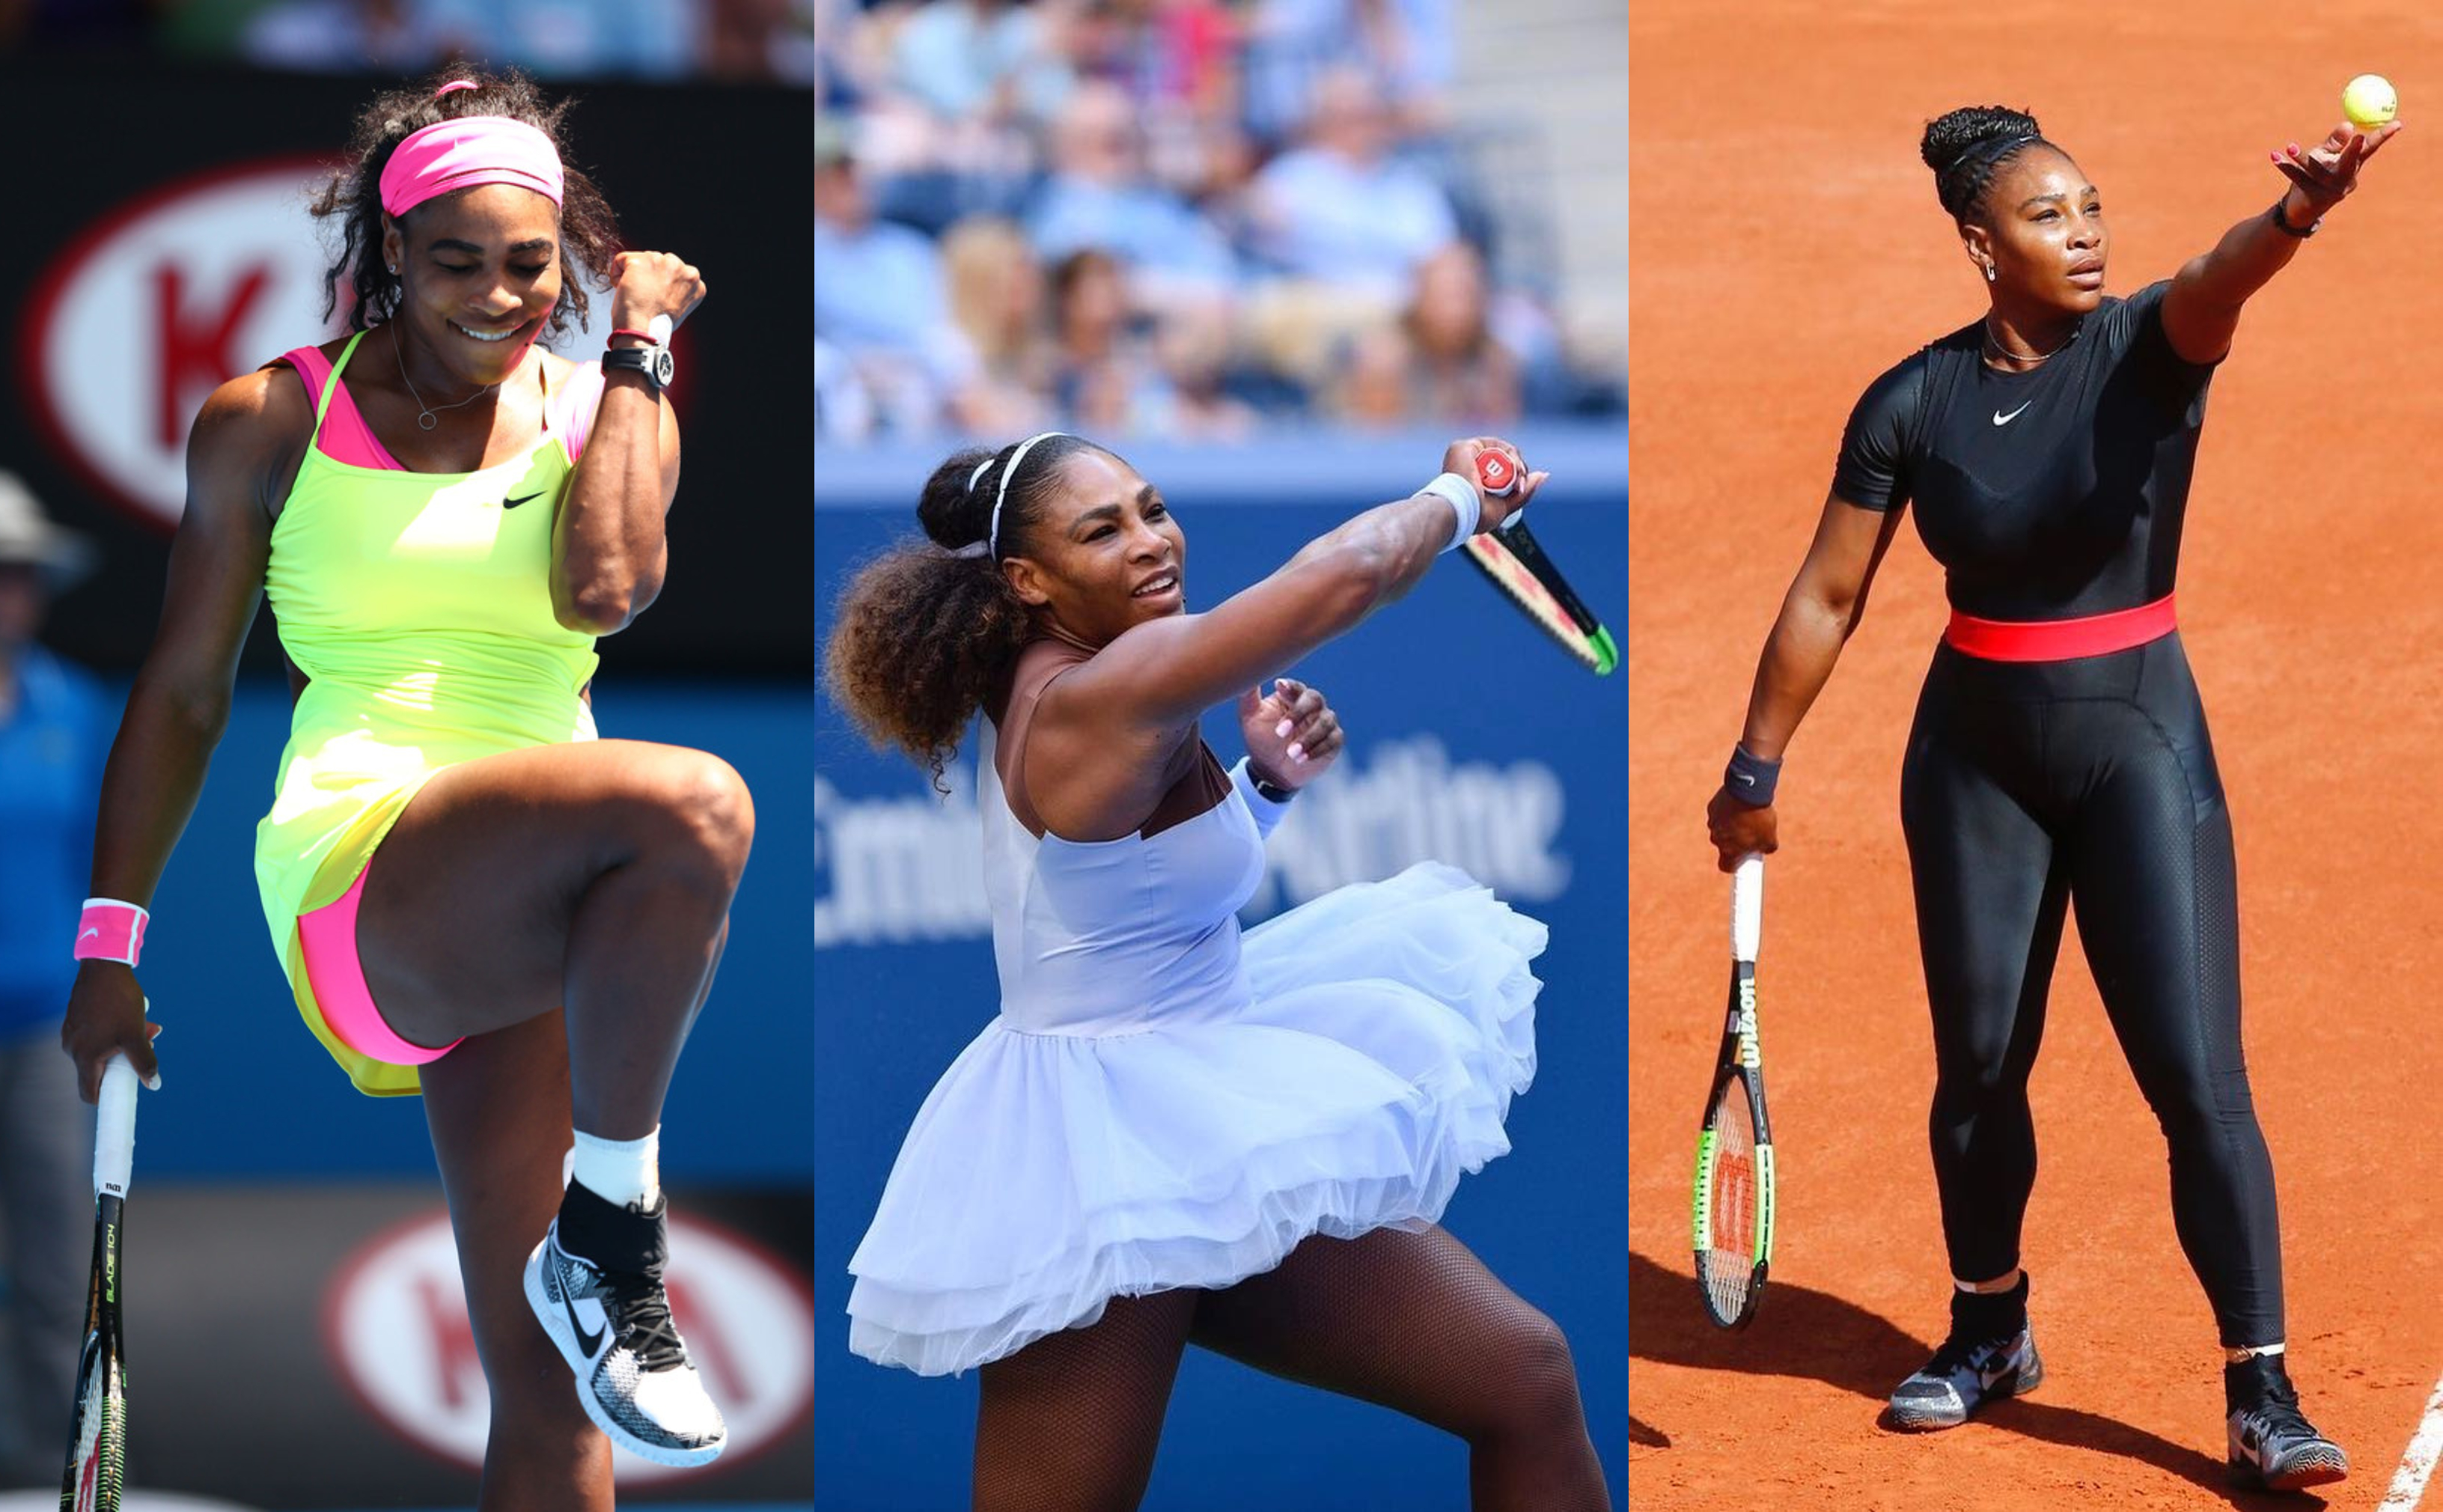 Serena Williams is not only the best female tennis player in the world—she's also the most stylish. Our kind of fashion icon! (Photos: WENN/Instagram)